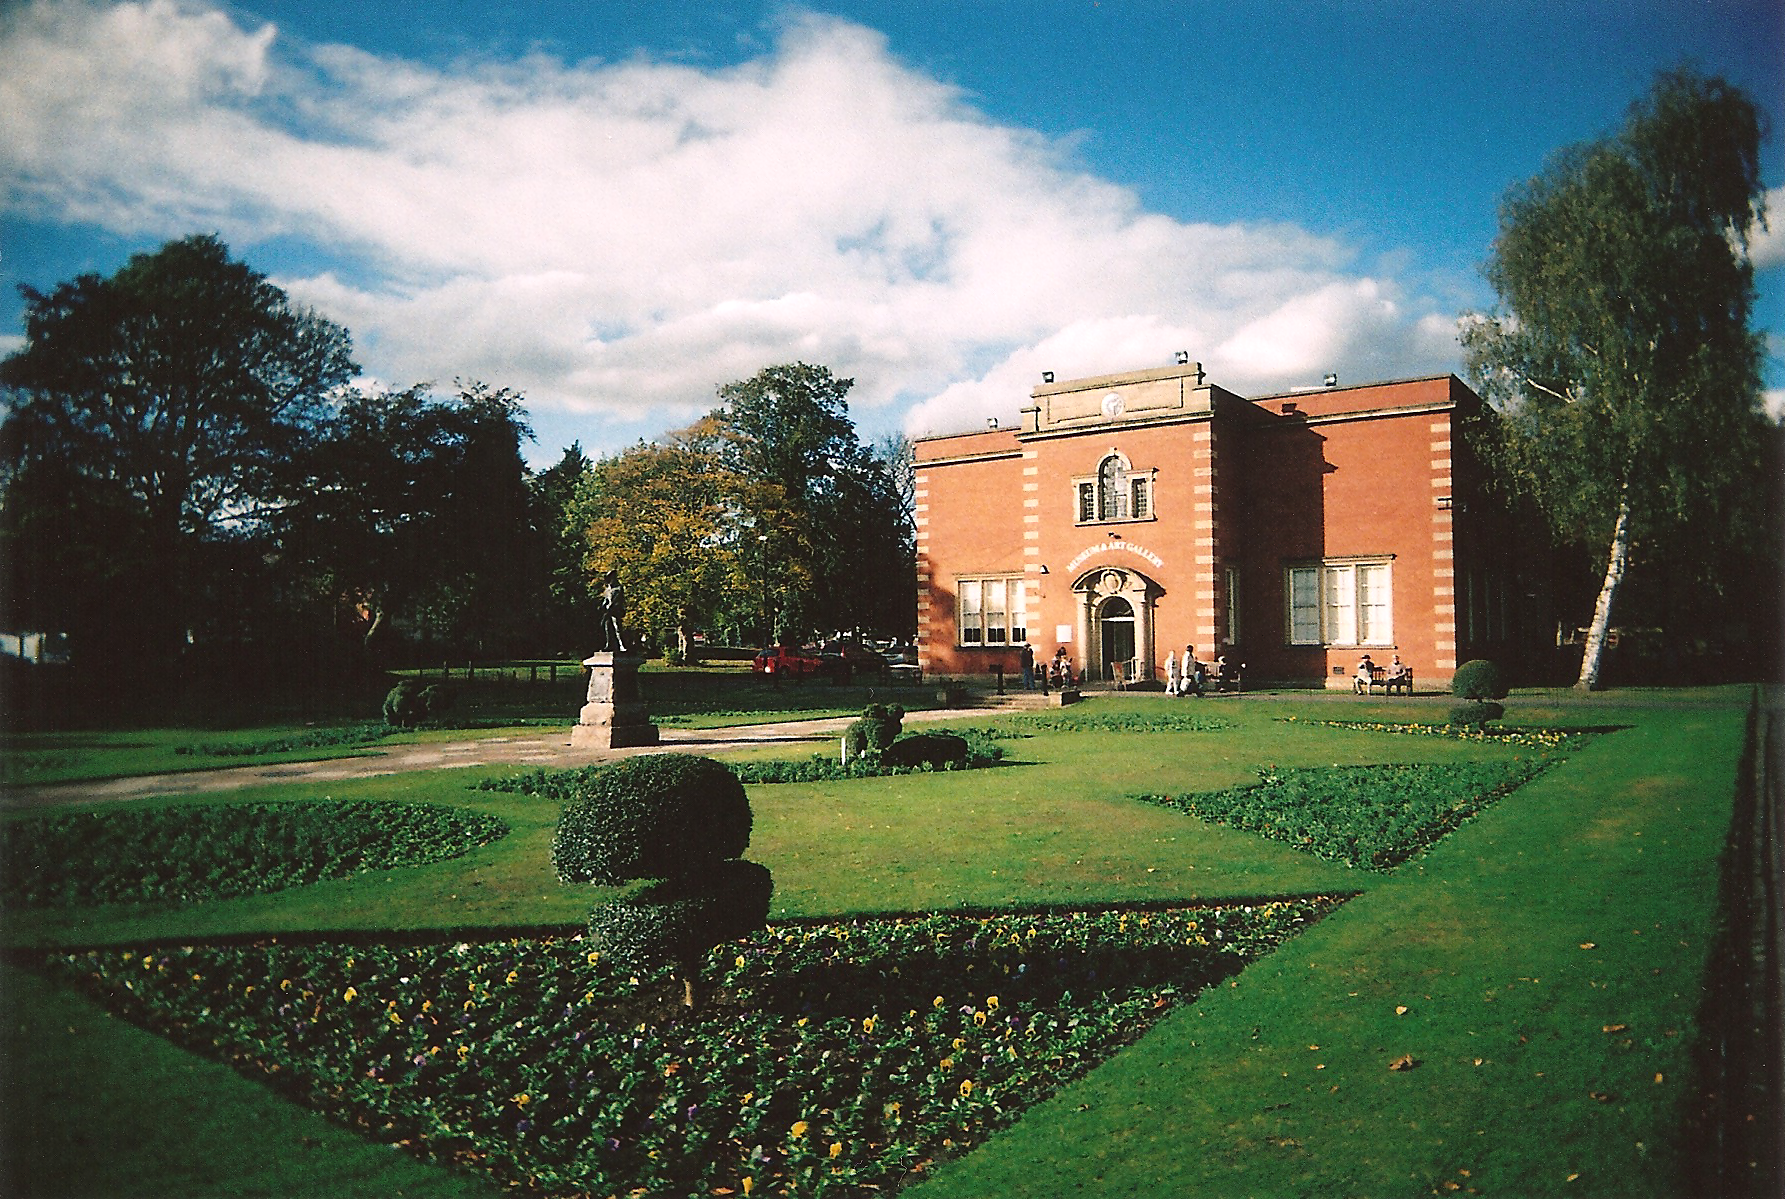 35mm Nuneaton Riversley Park Museum